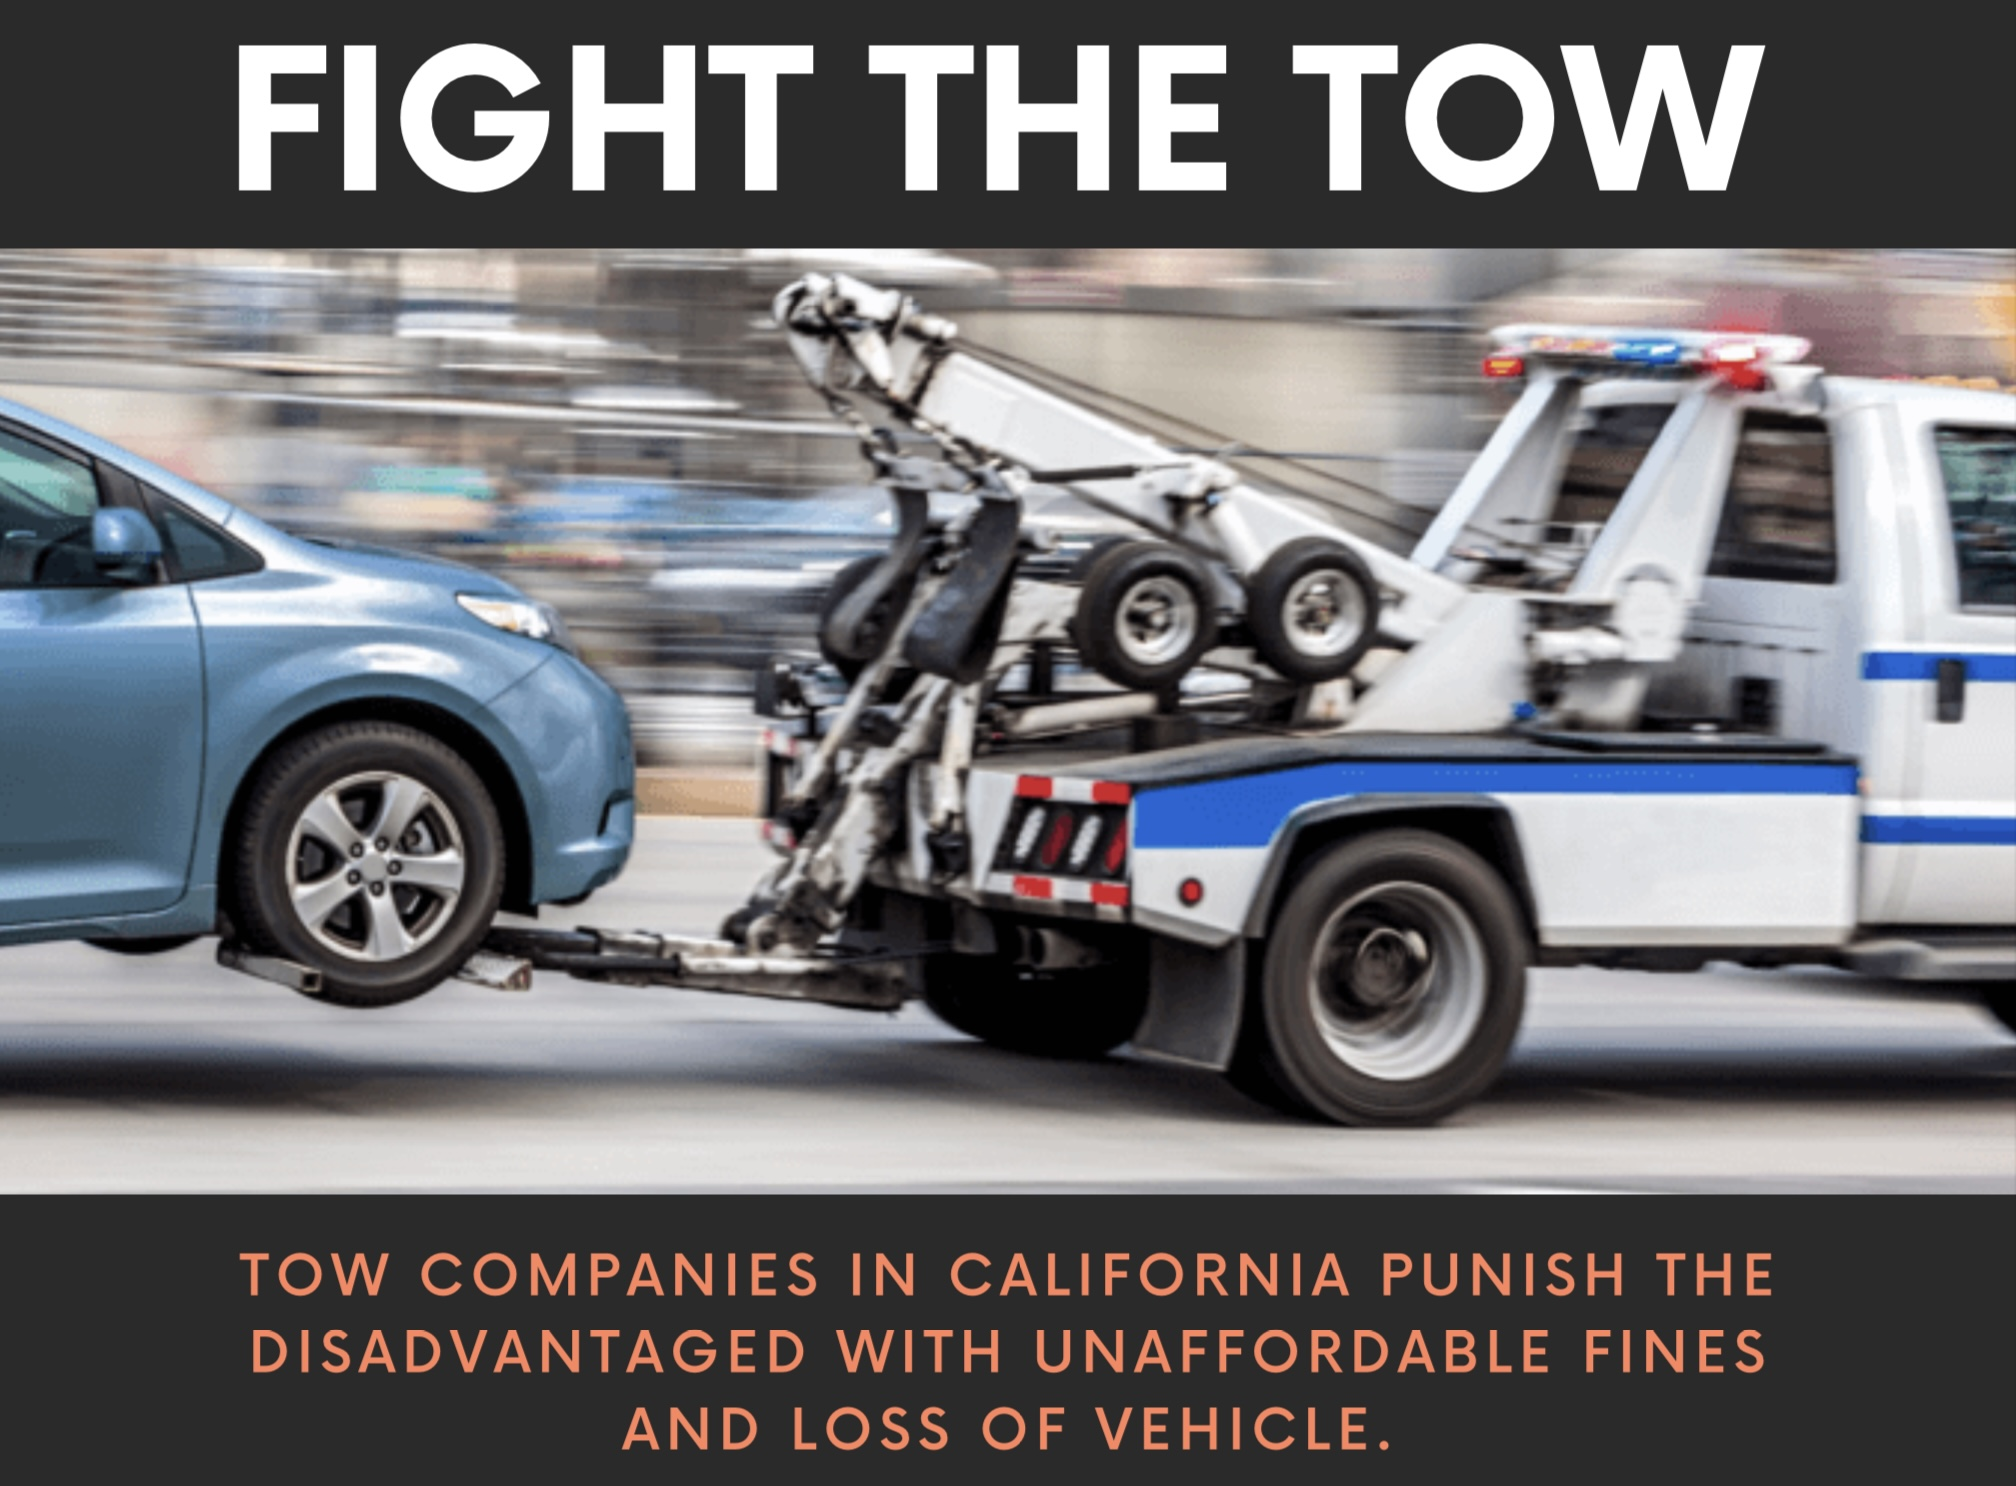 California's Towing Punishes The Disadvantaged with Unaffordable Fines and Loss of Vehicle.